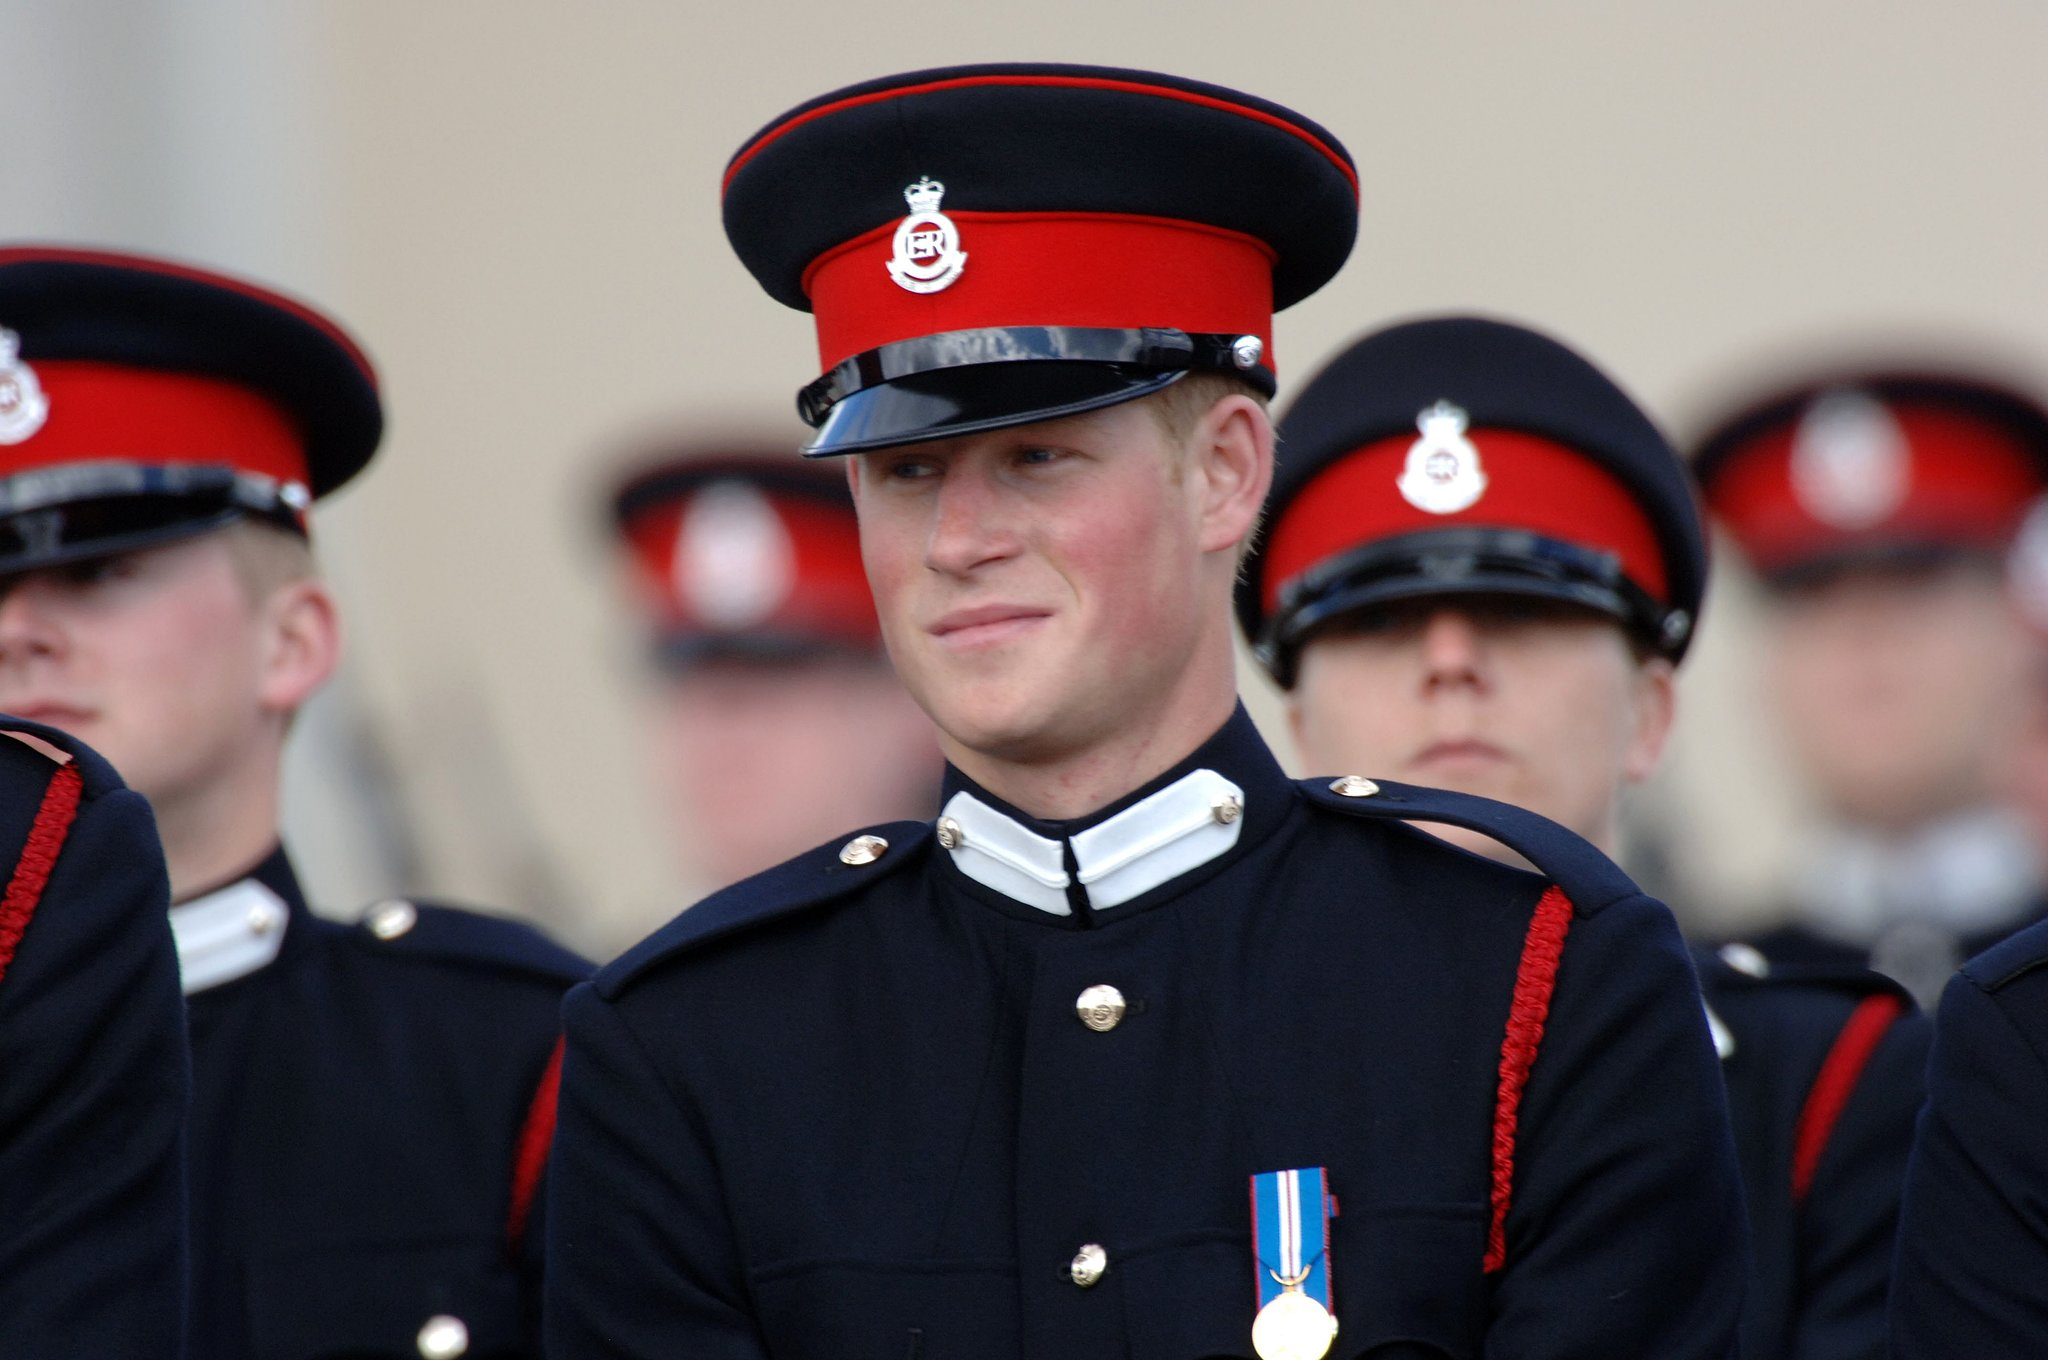 Prince Harry donned a uniform to become a second lieutenant in 2006.